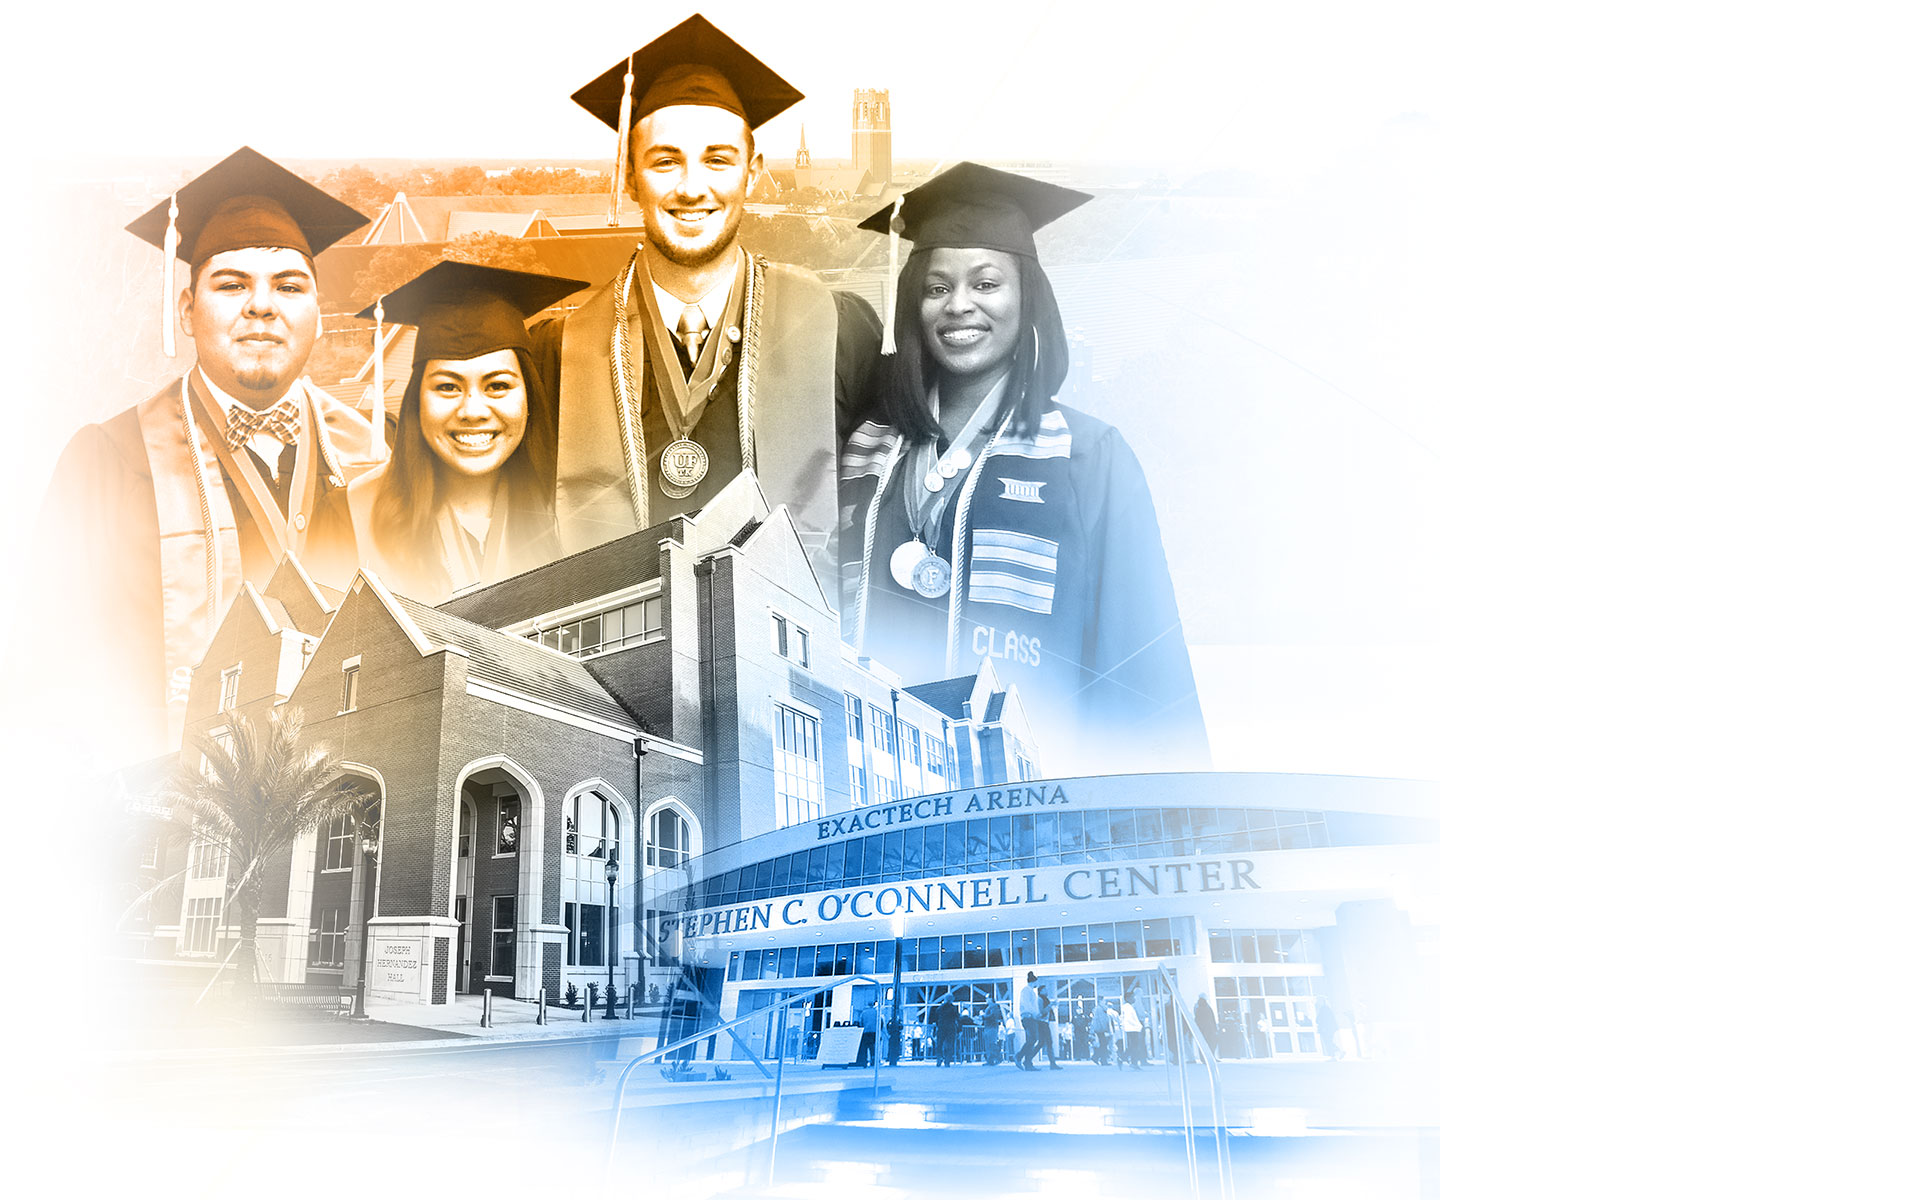 About the Club - The Tampa Gator Club®is an affiliate of the UF Alumni Associationand exist to support the mission of the University of Florida.